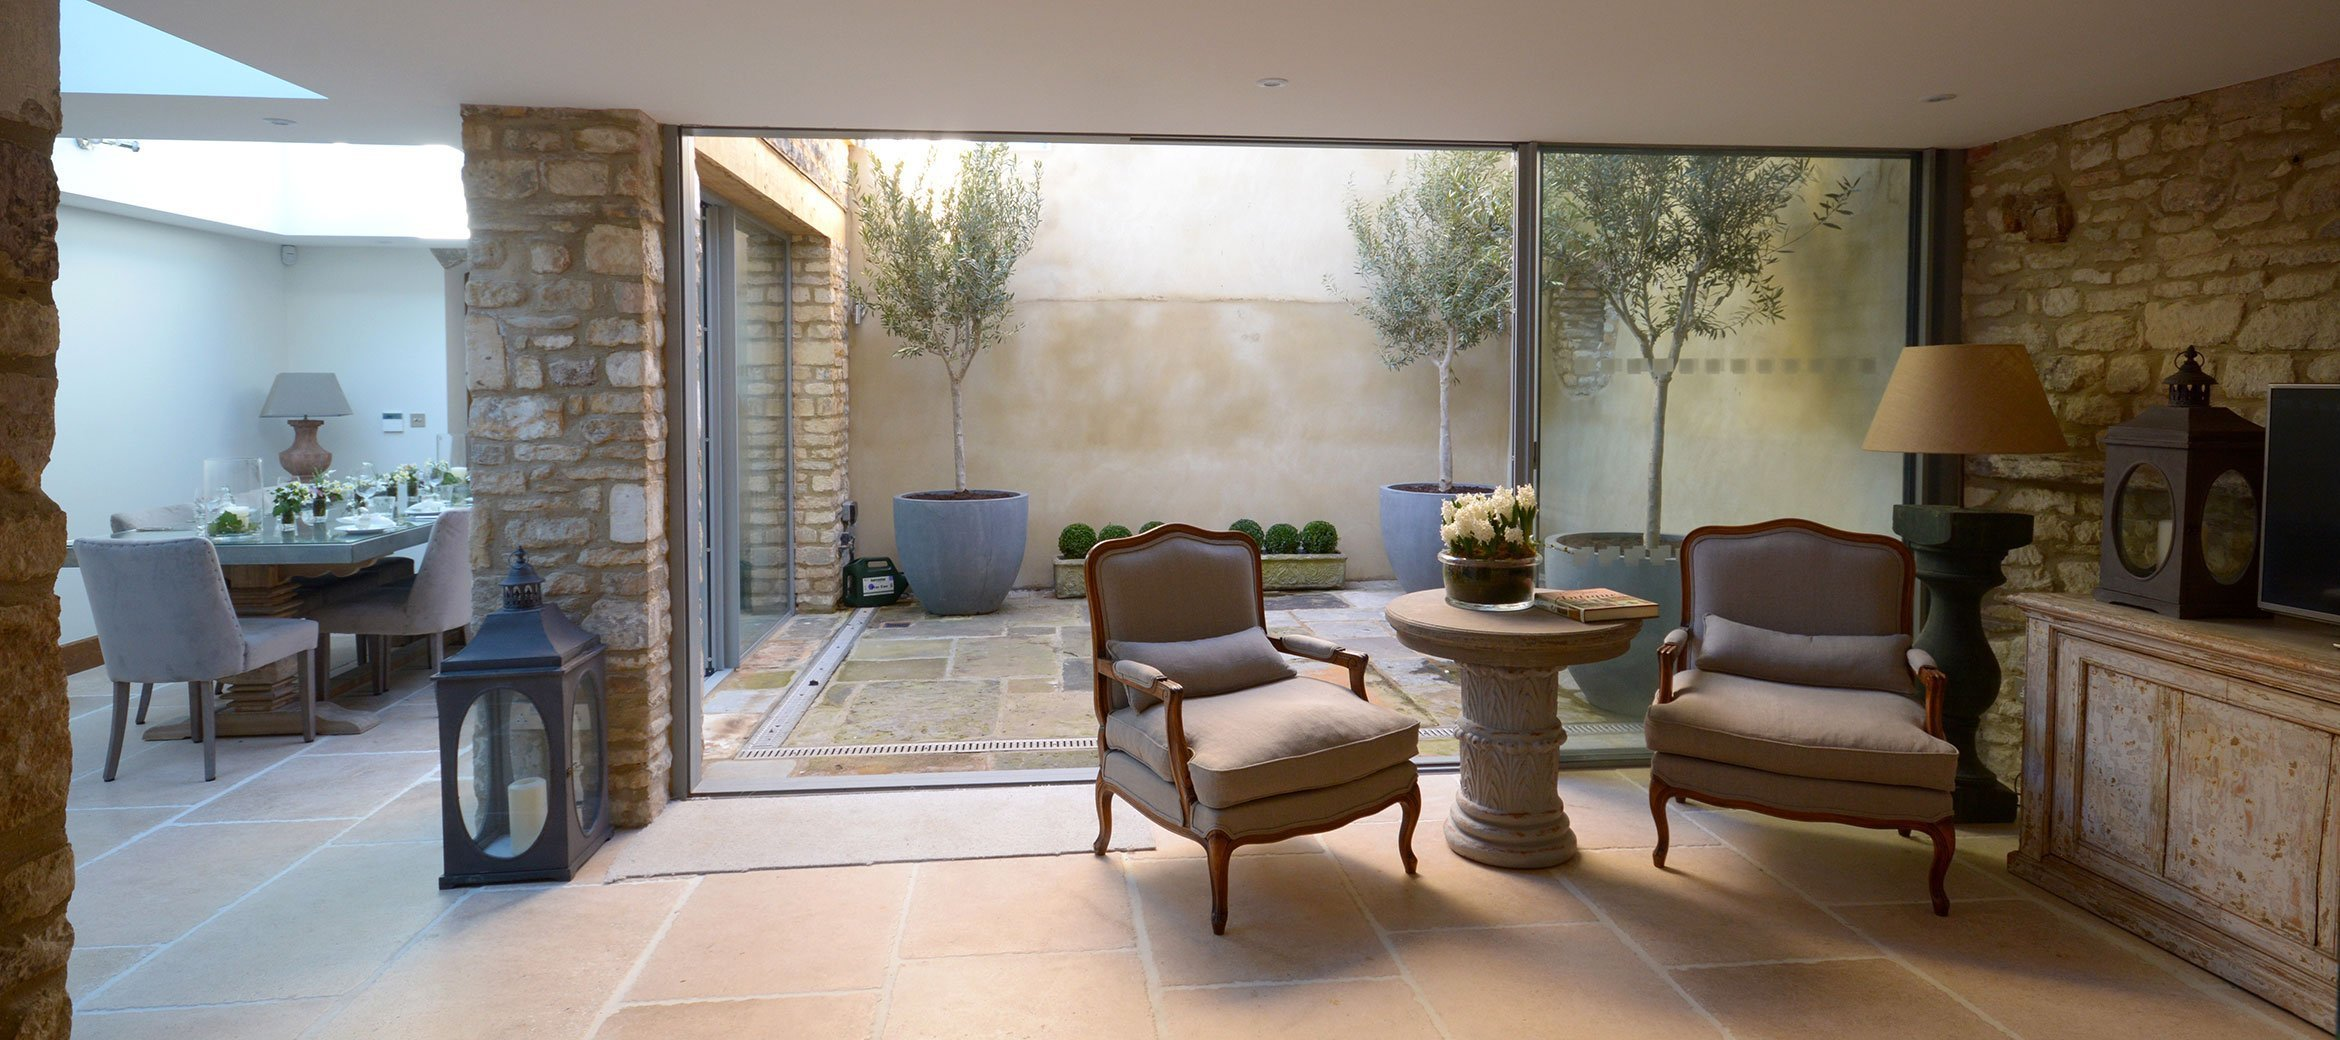 burford-cotswold-cottage-dining-sitting-room-courtyard